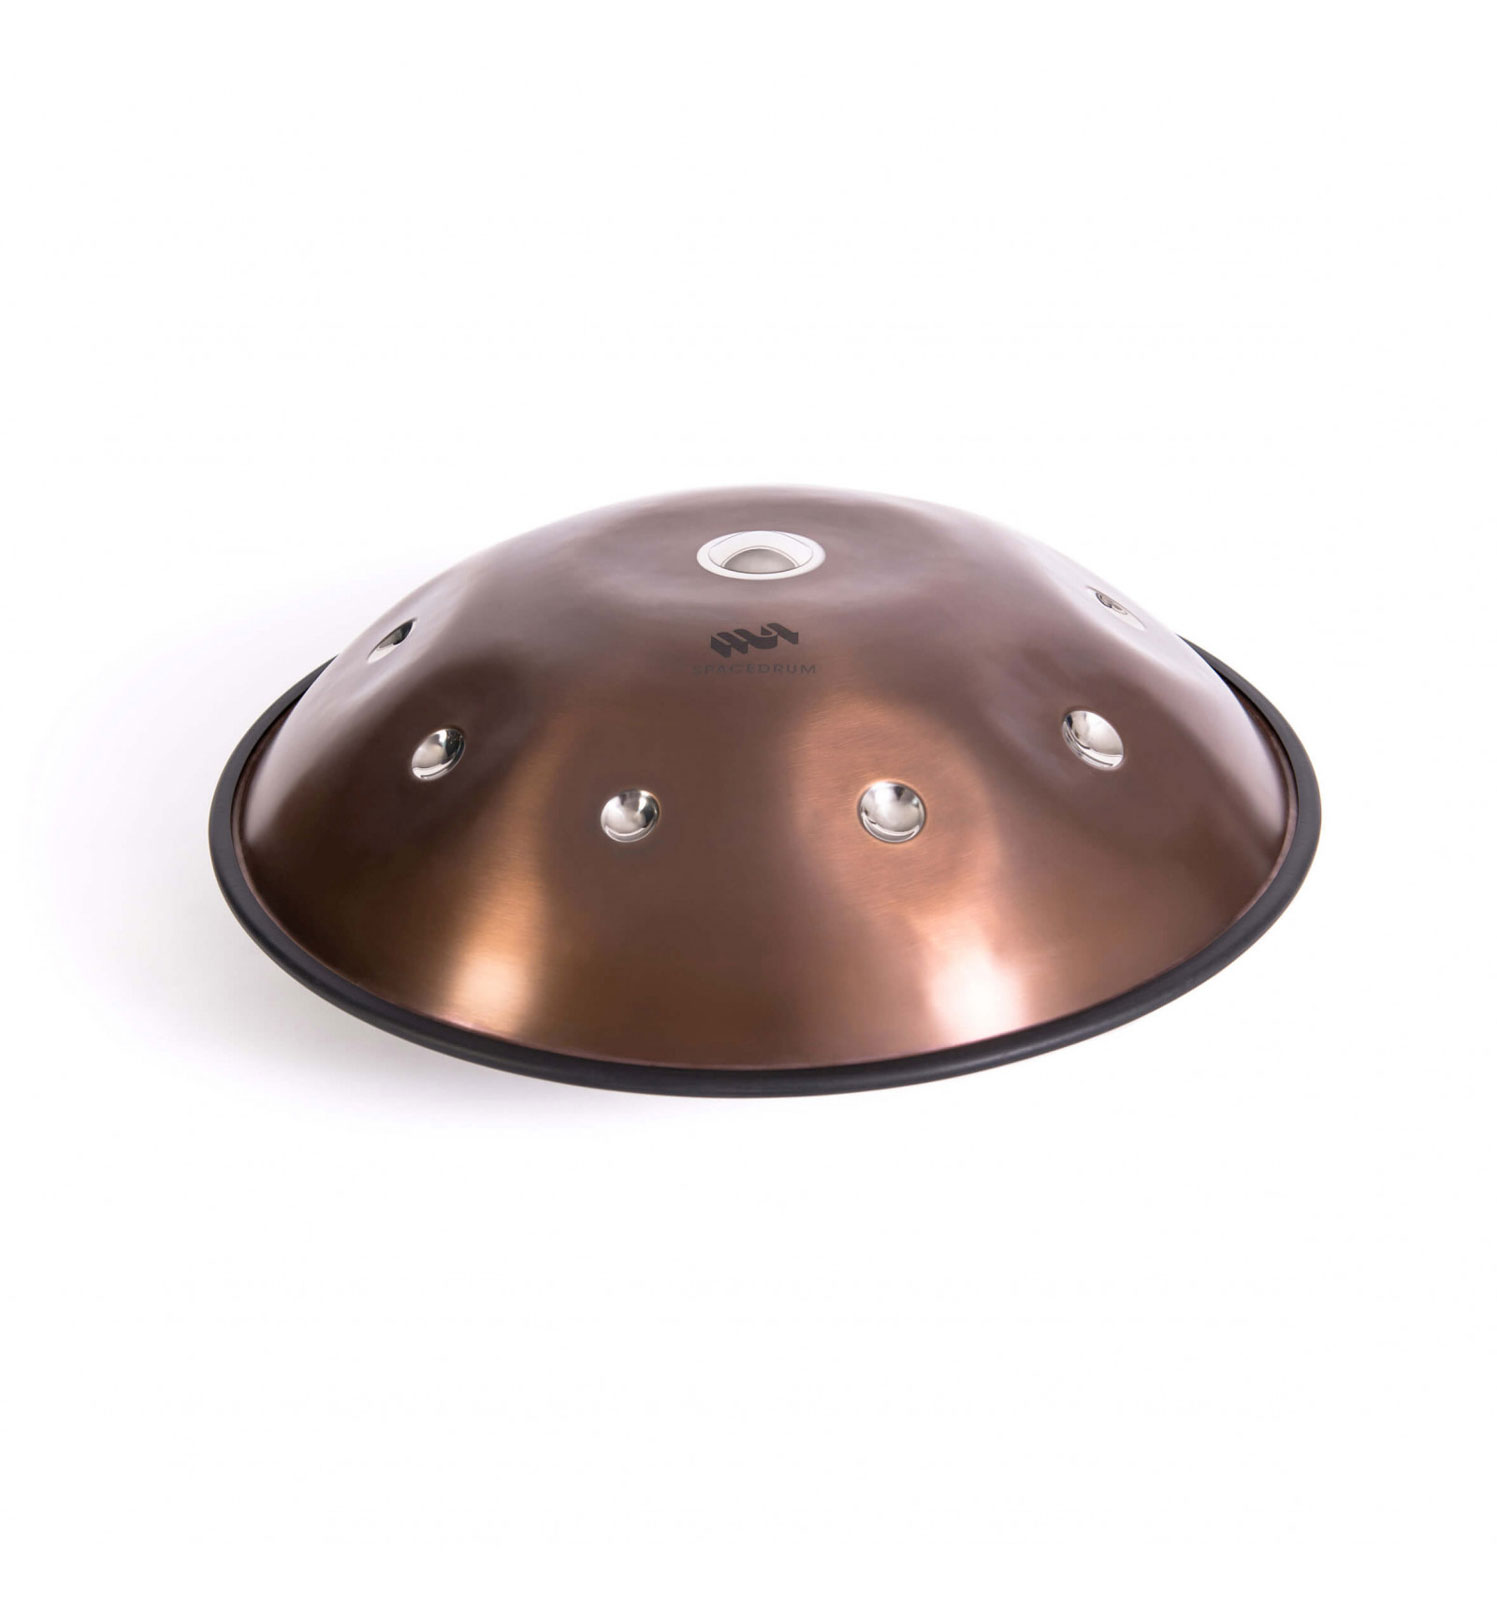 SPACEDRUM EVOLUTION SPACE11-1 HANDPAN 9 NOTES 60 CM EQUINOX - GIG BAG